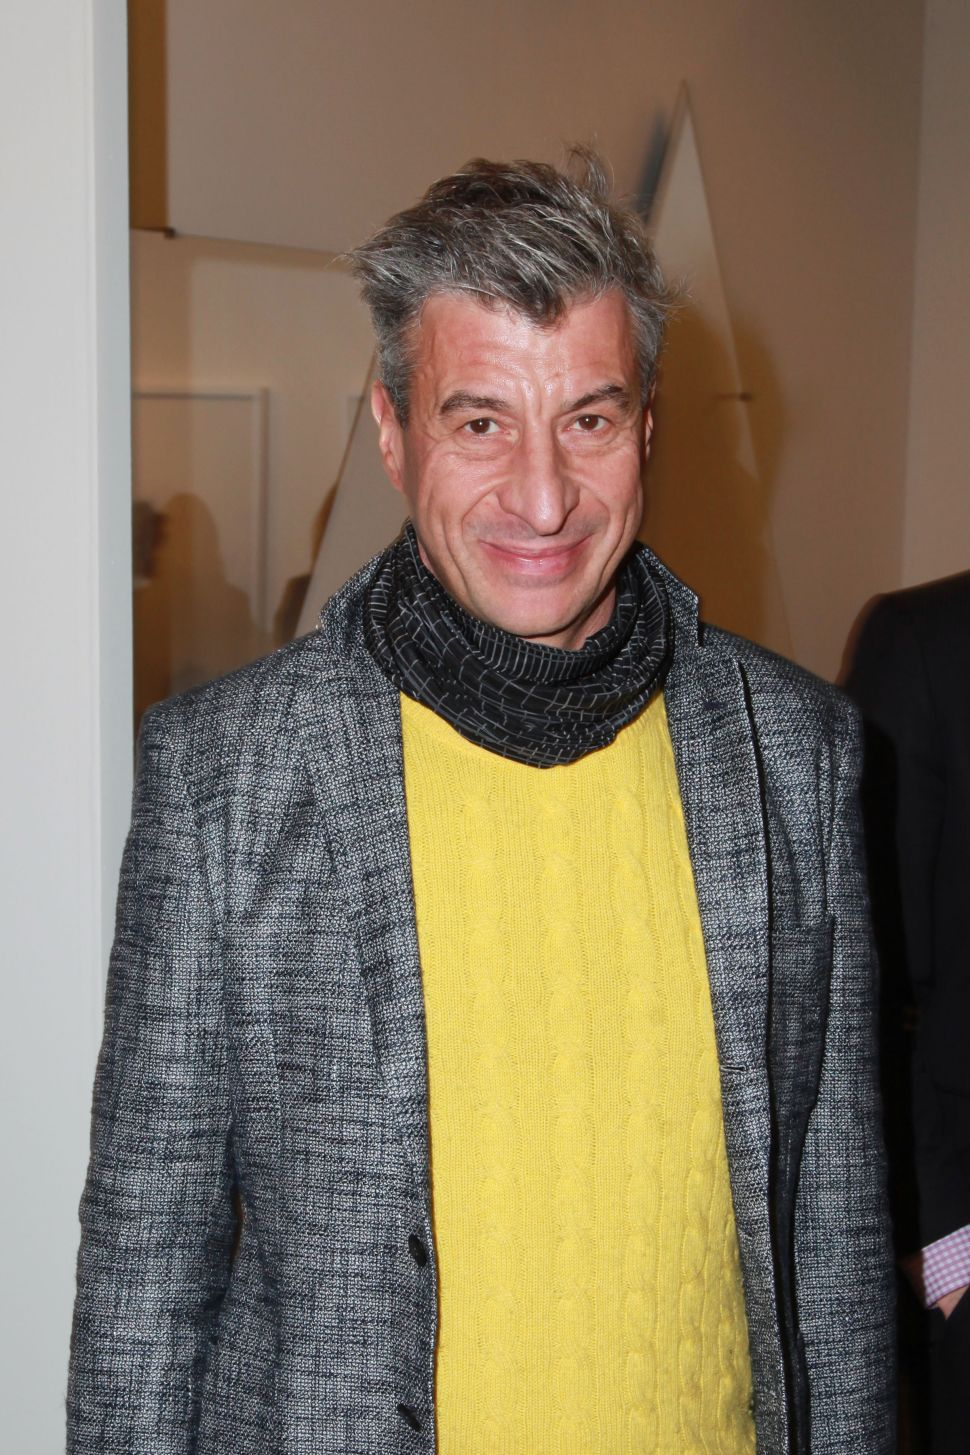 You Can Now Watch the Trailer for 'Maurizio Cattelan: The Movie'